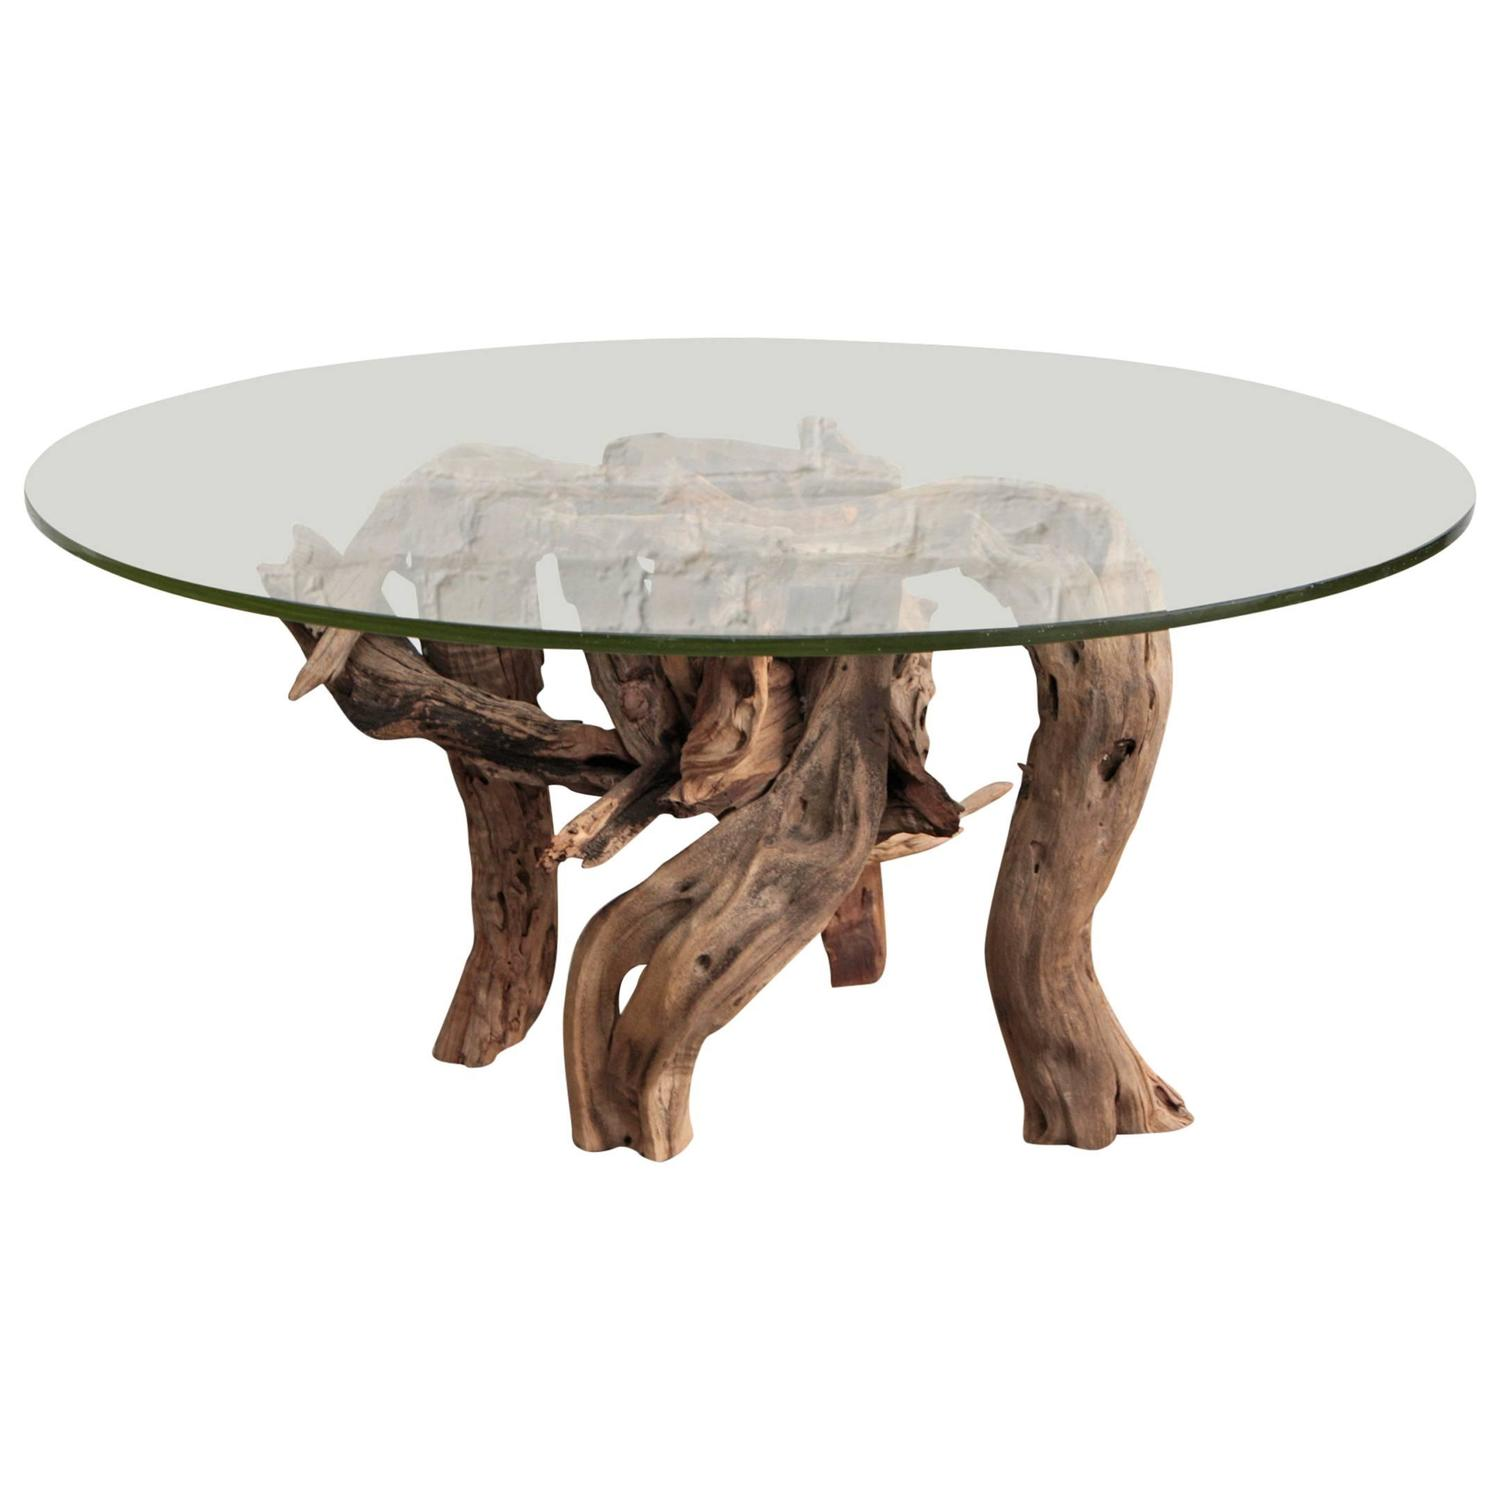 driftwood coffee table round glass top for sale at 1stdibs. Black Bedroom Furniture Sets. Home Design Ideas